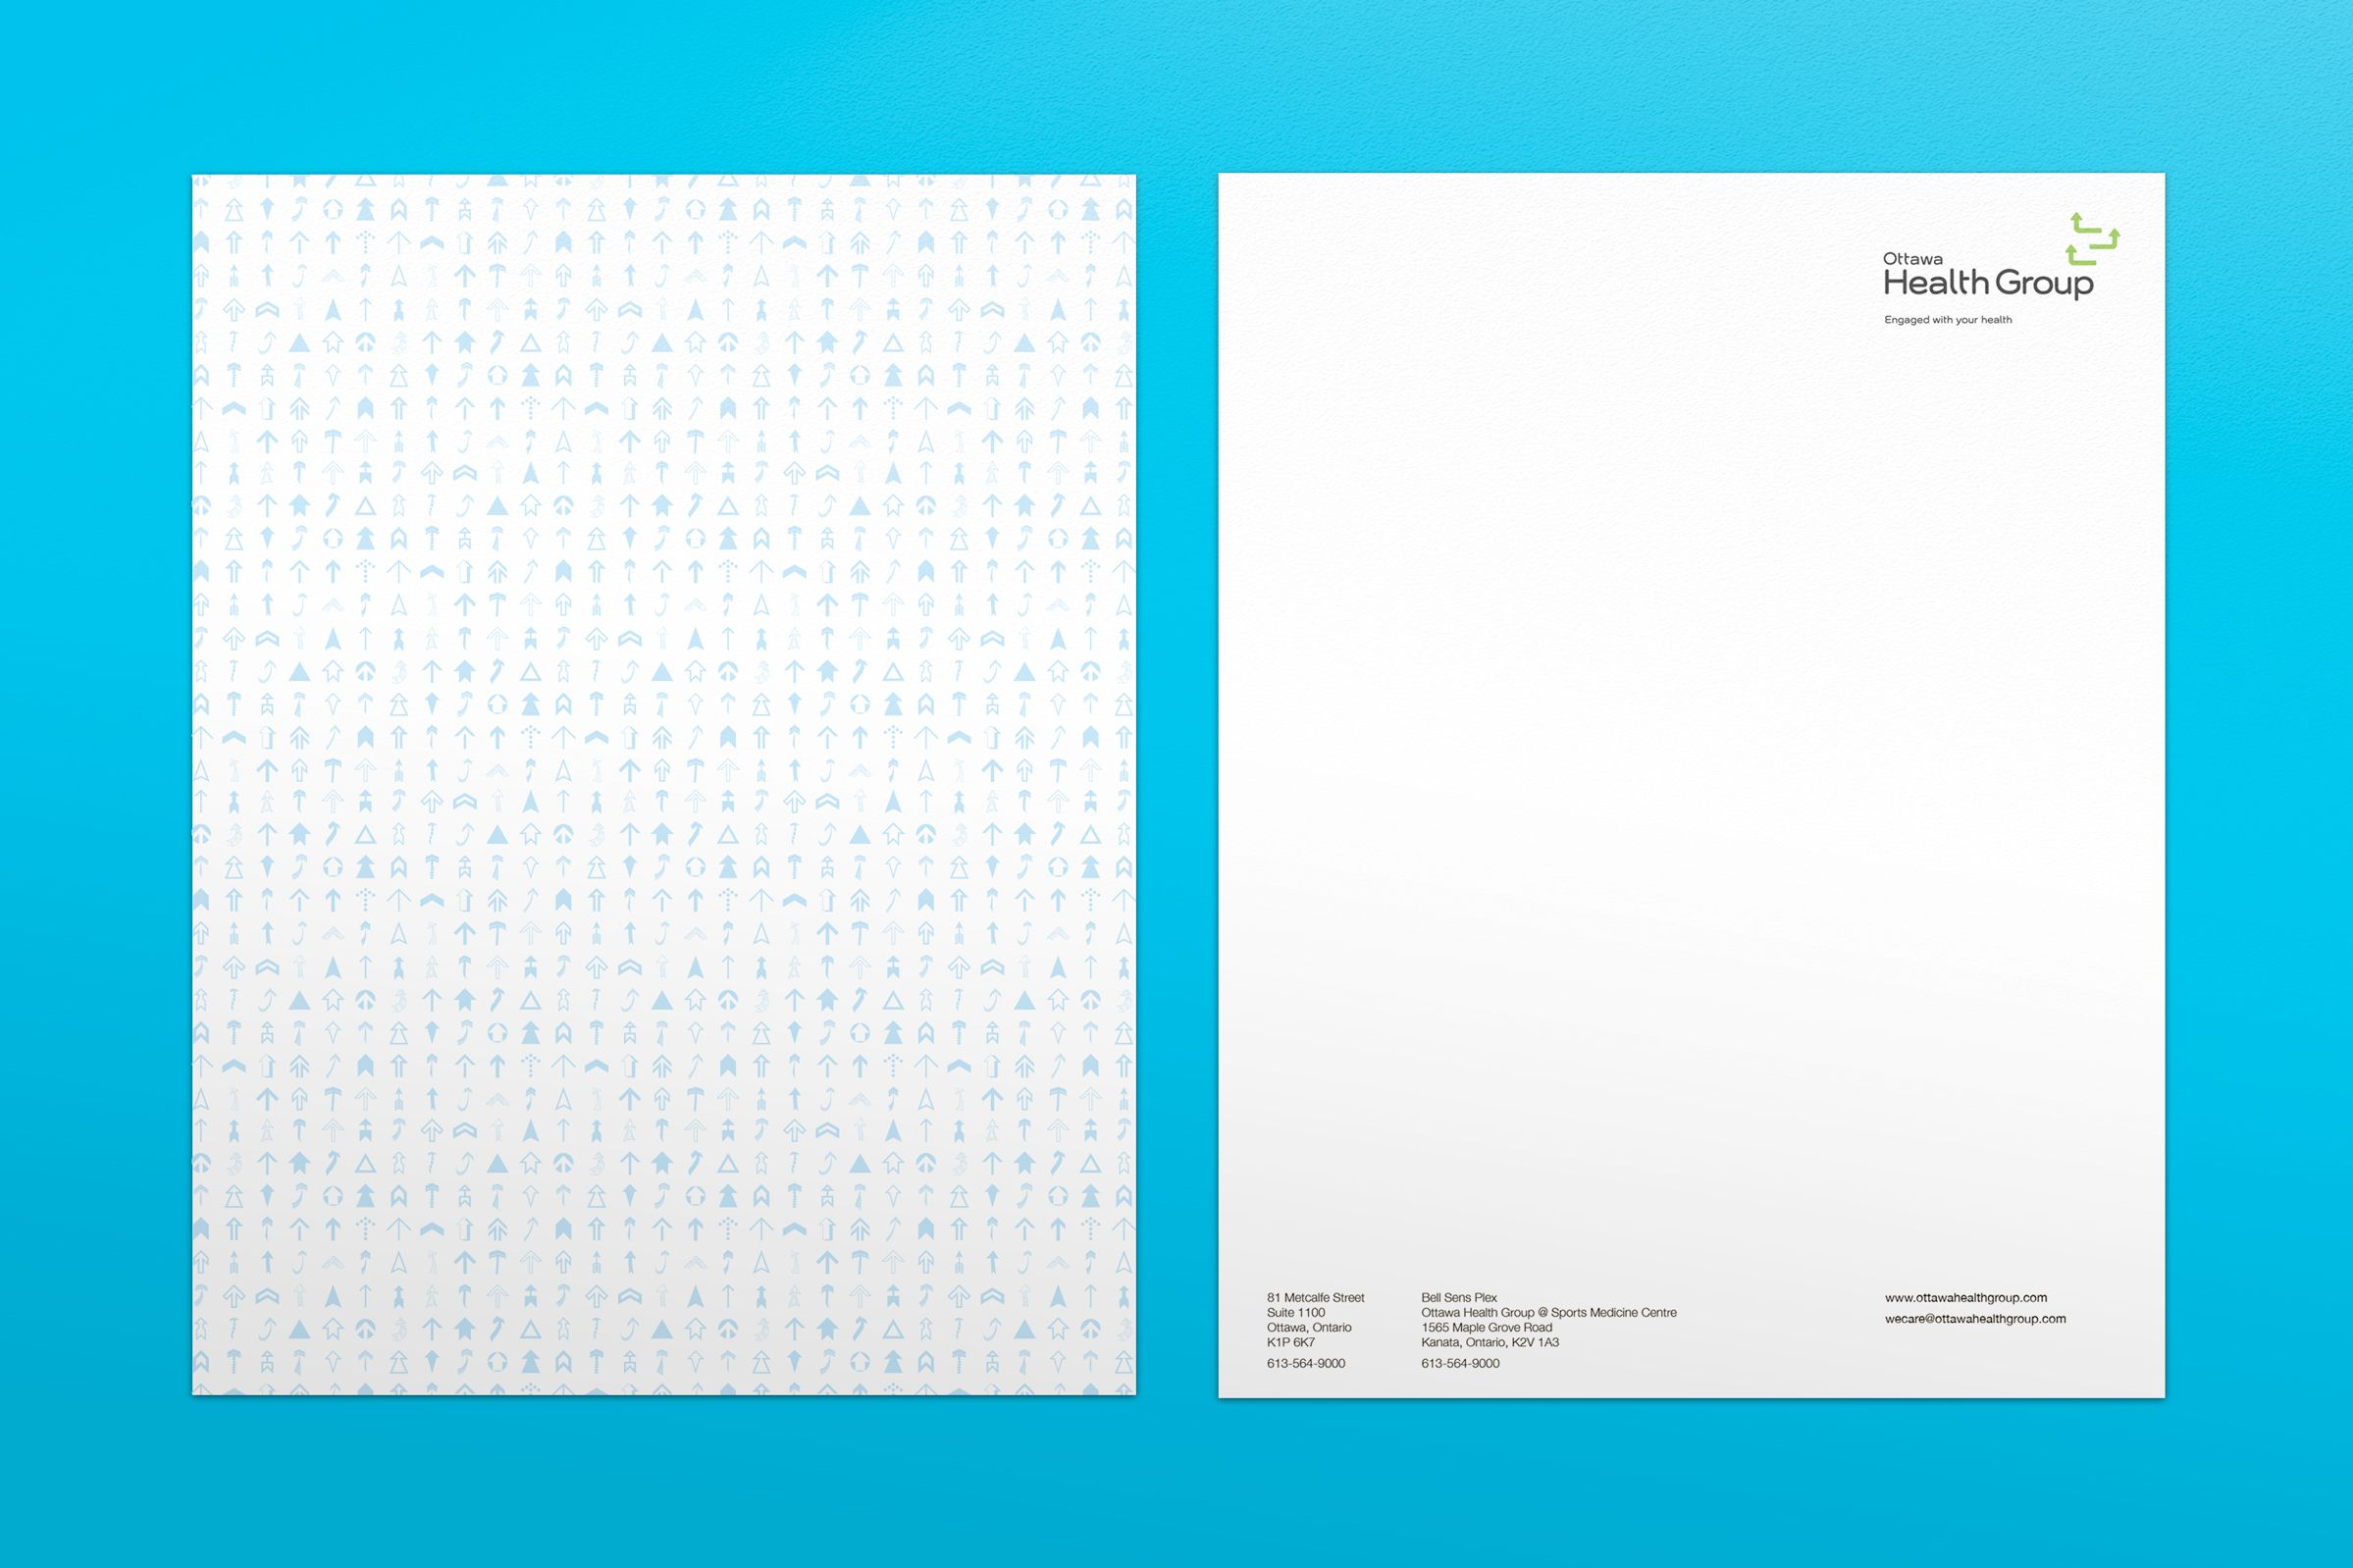 Letterhead for Ottawa Health Group, a health care provider by Graphic Designer idApostle